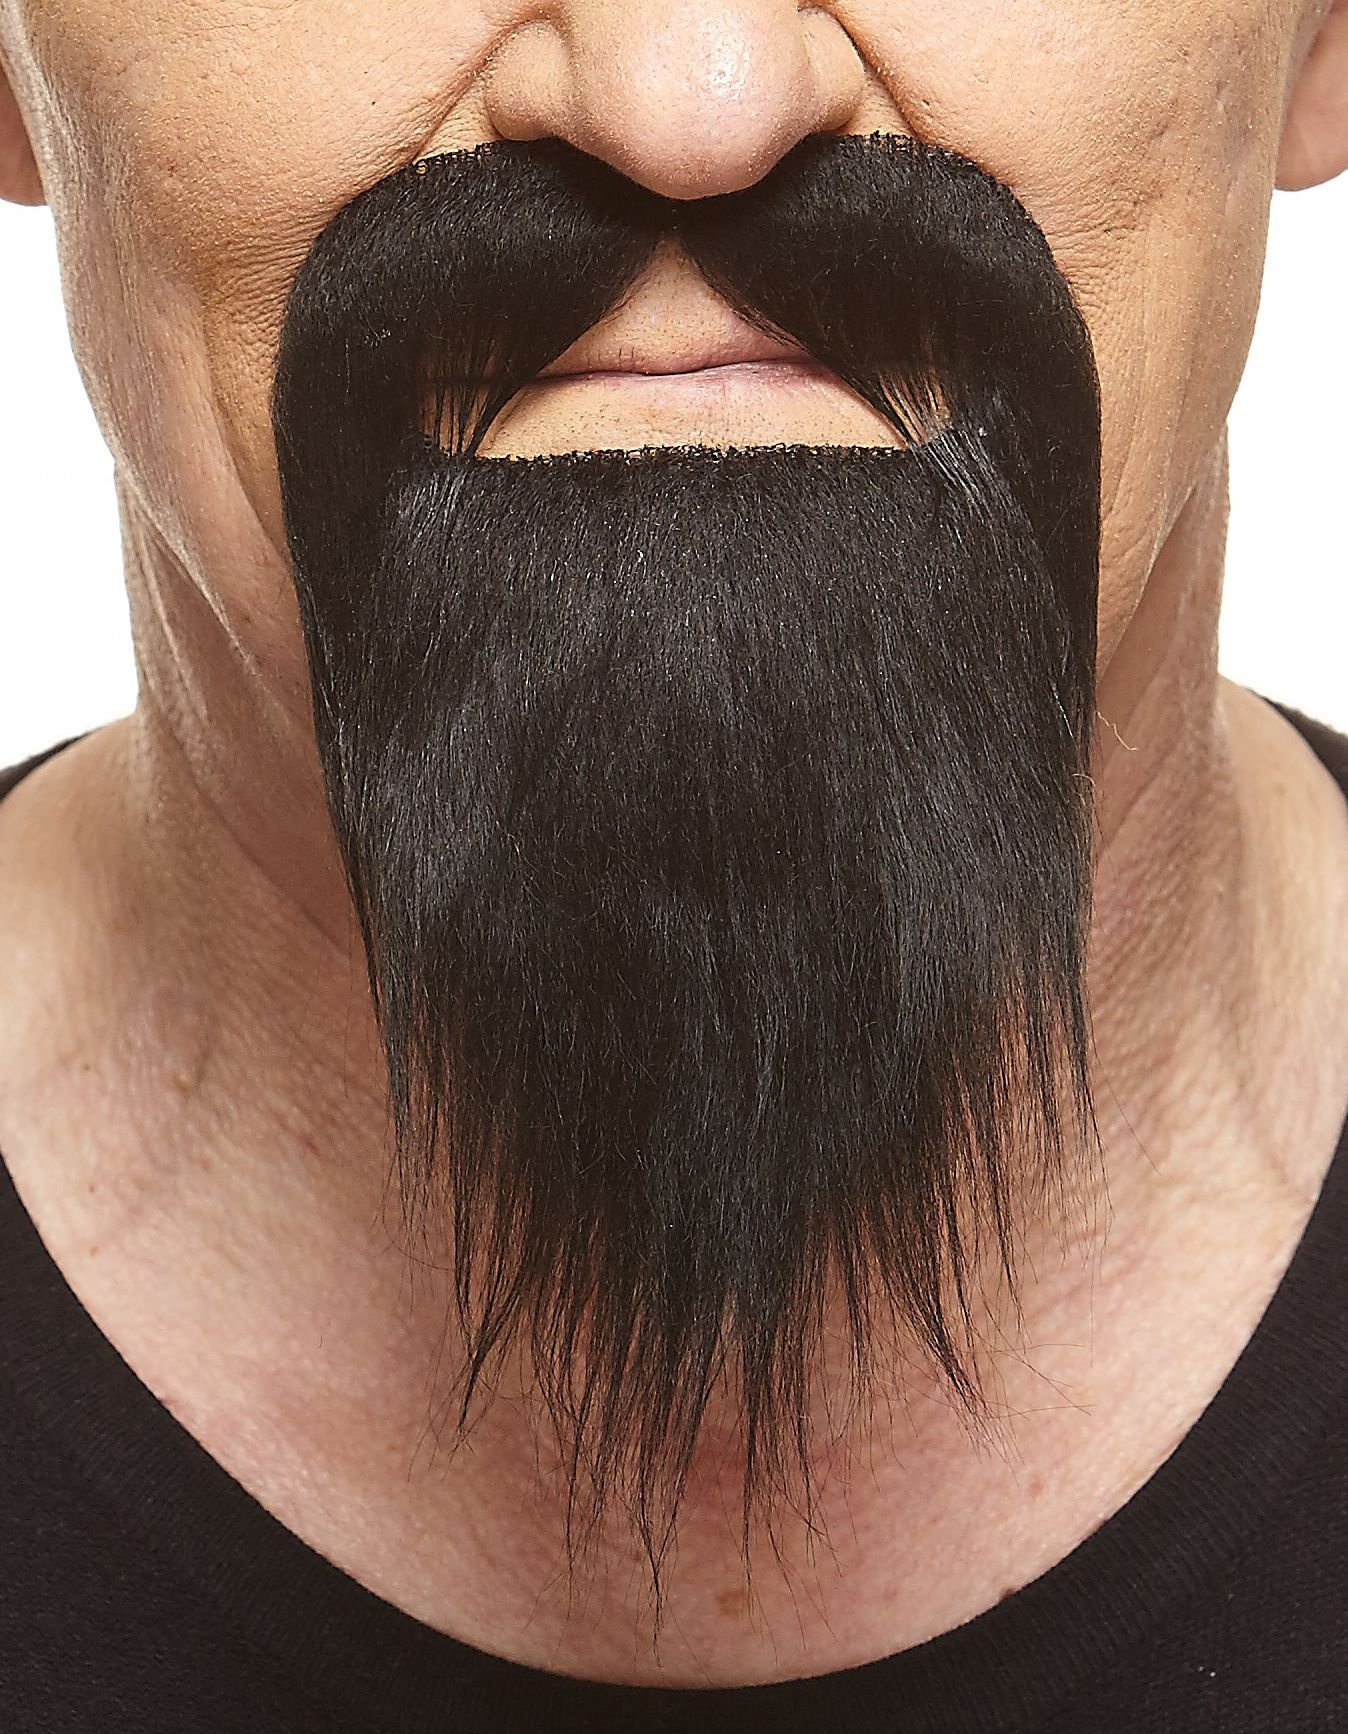 Mustaches Self Adhesive, Novelty, Fake, Short Ducktail Beard, Black Color